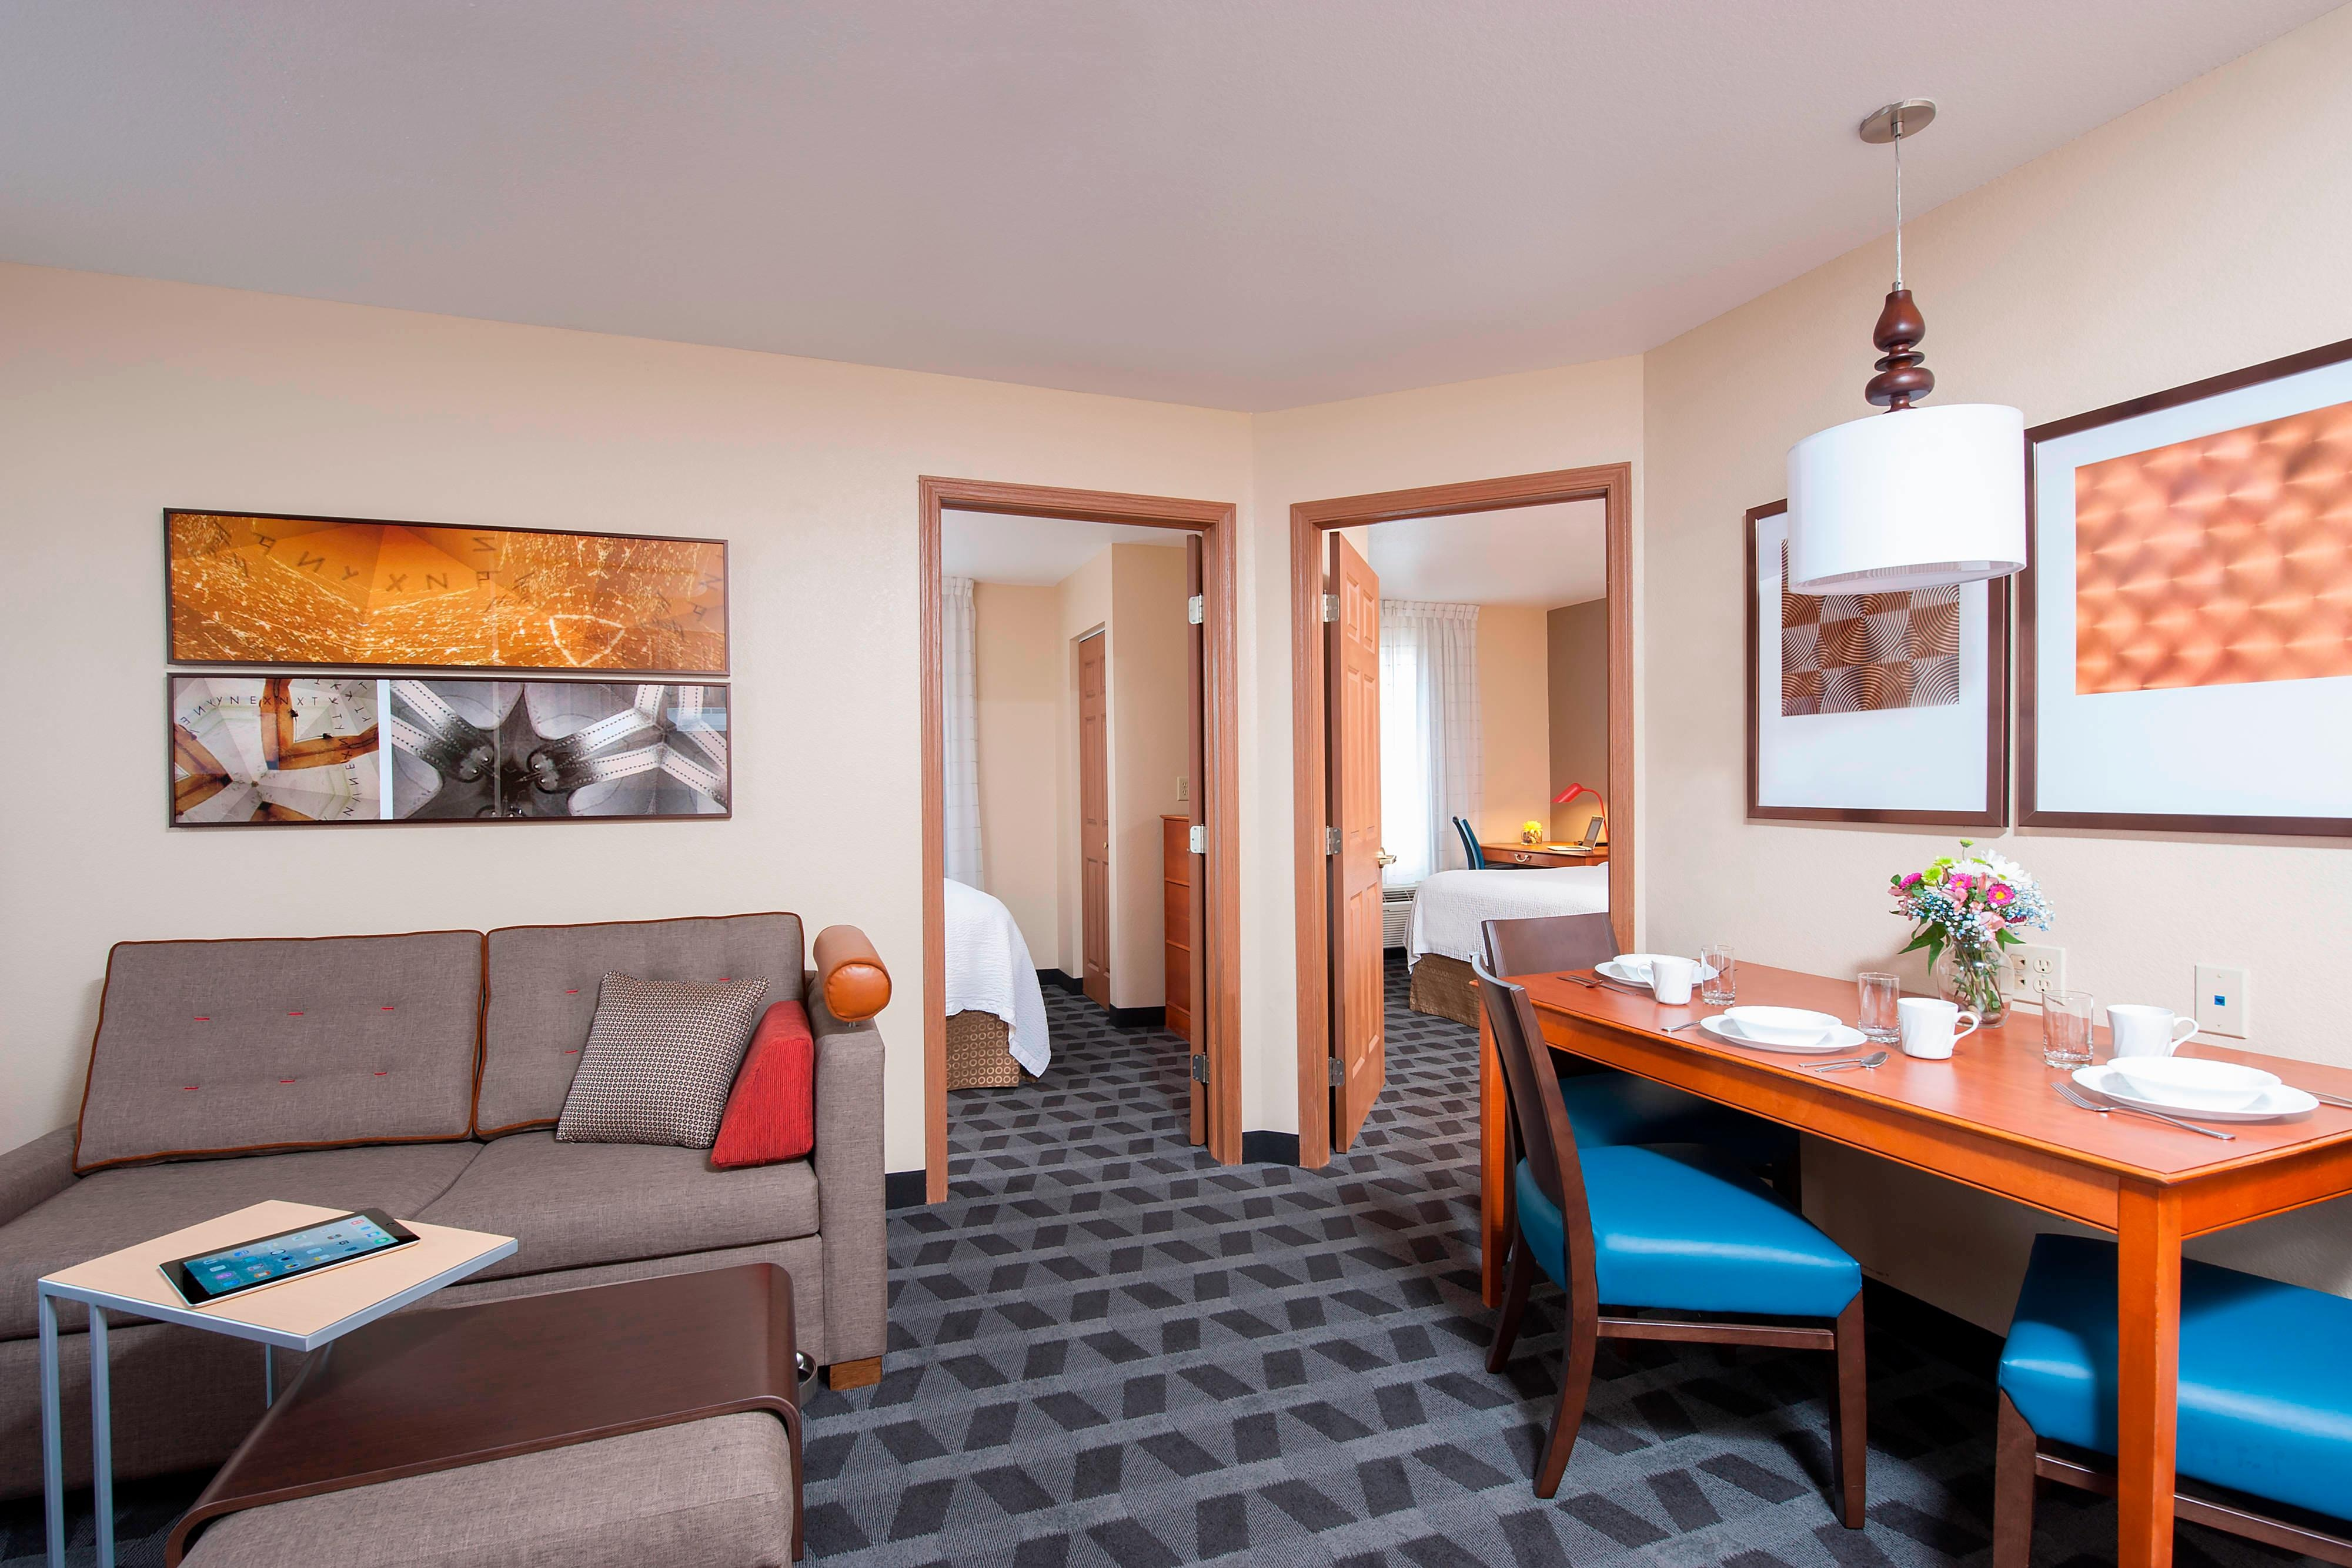 Indianapolis Hotels Towneplace Suites Indianapolis Park 100 View Guest Rooms